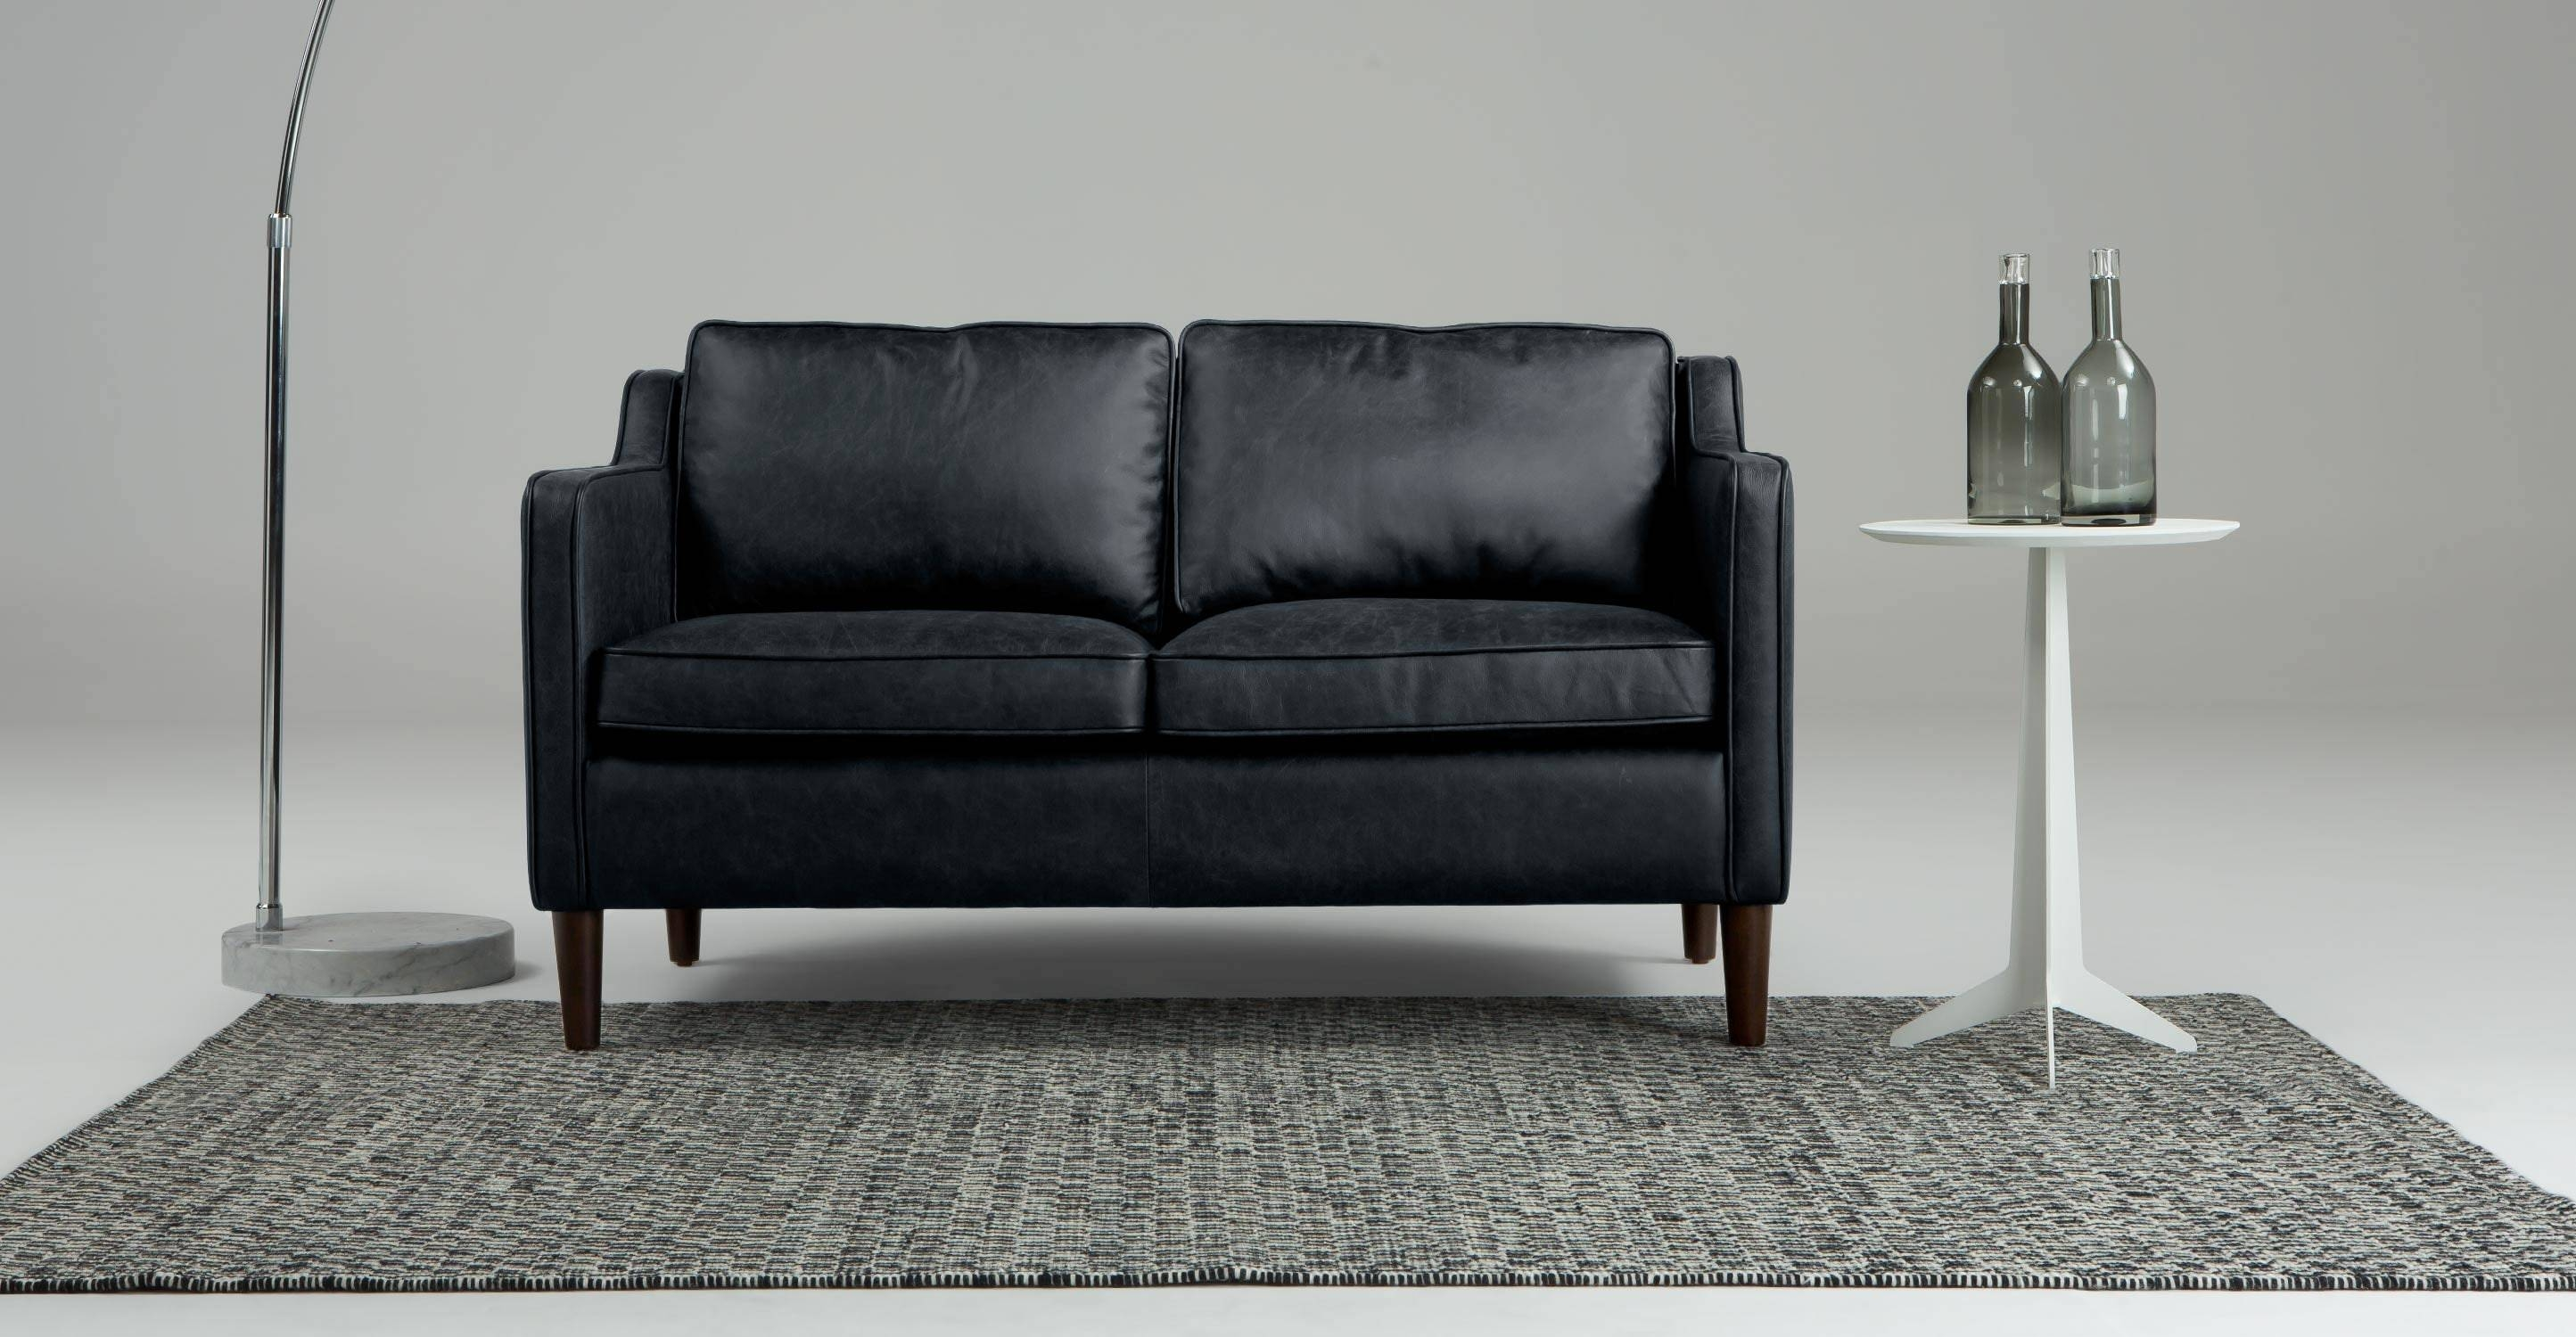 Walken 2 Seater Sofa In Black Premium Leather | Made for Black 2 Seater Sofas (Image 30 of 30)